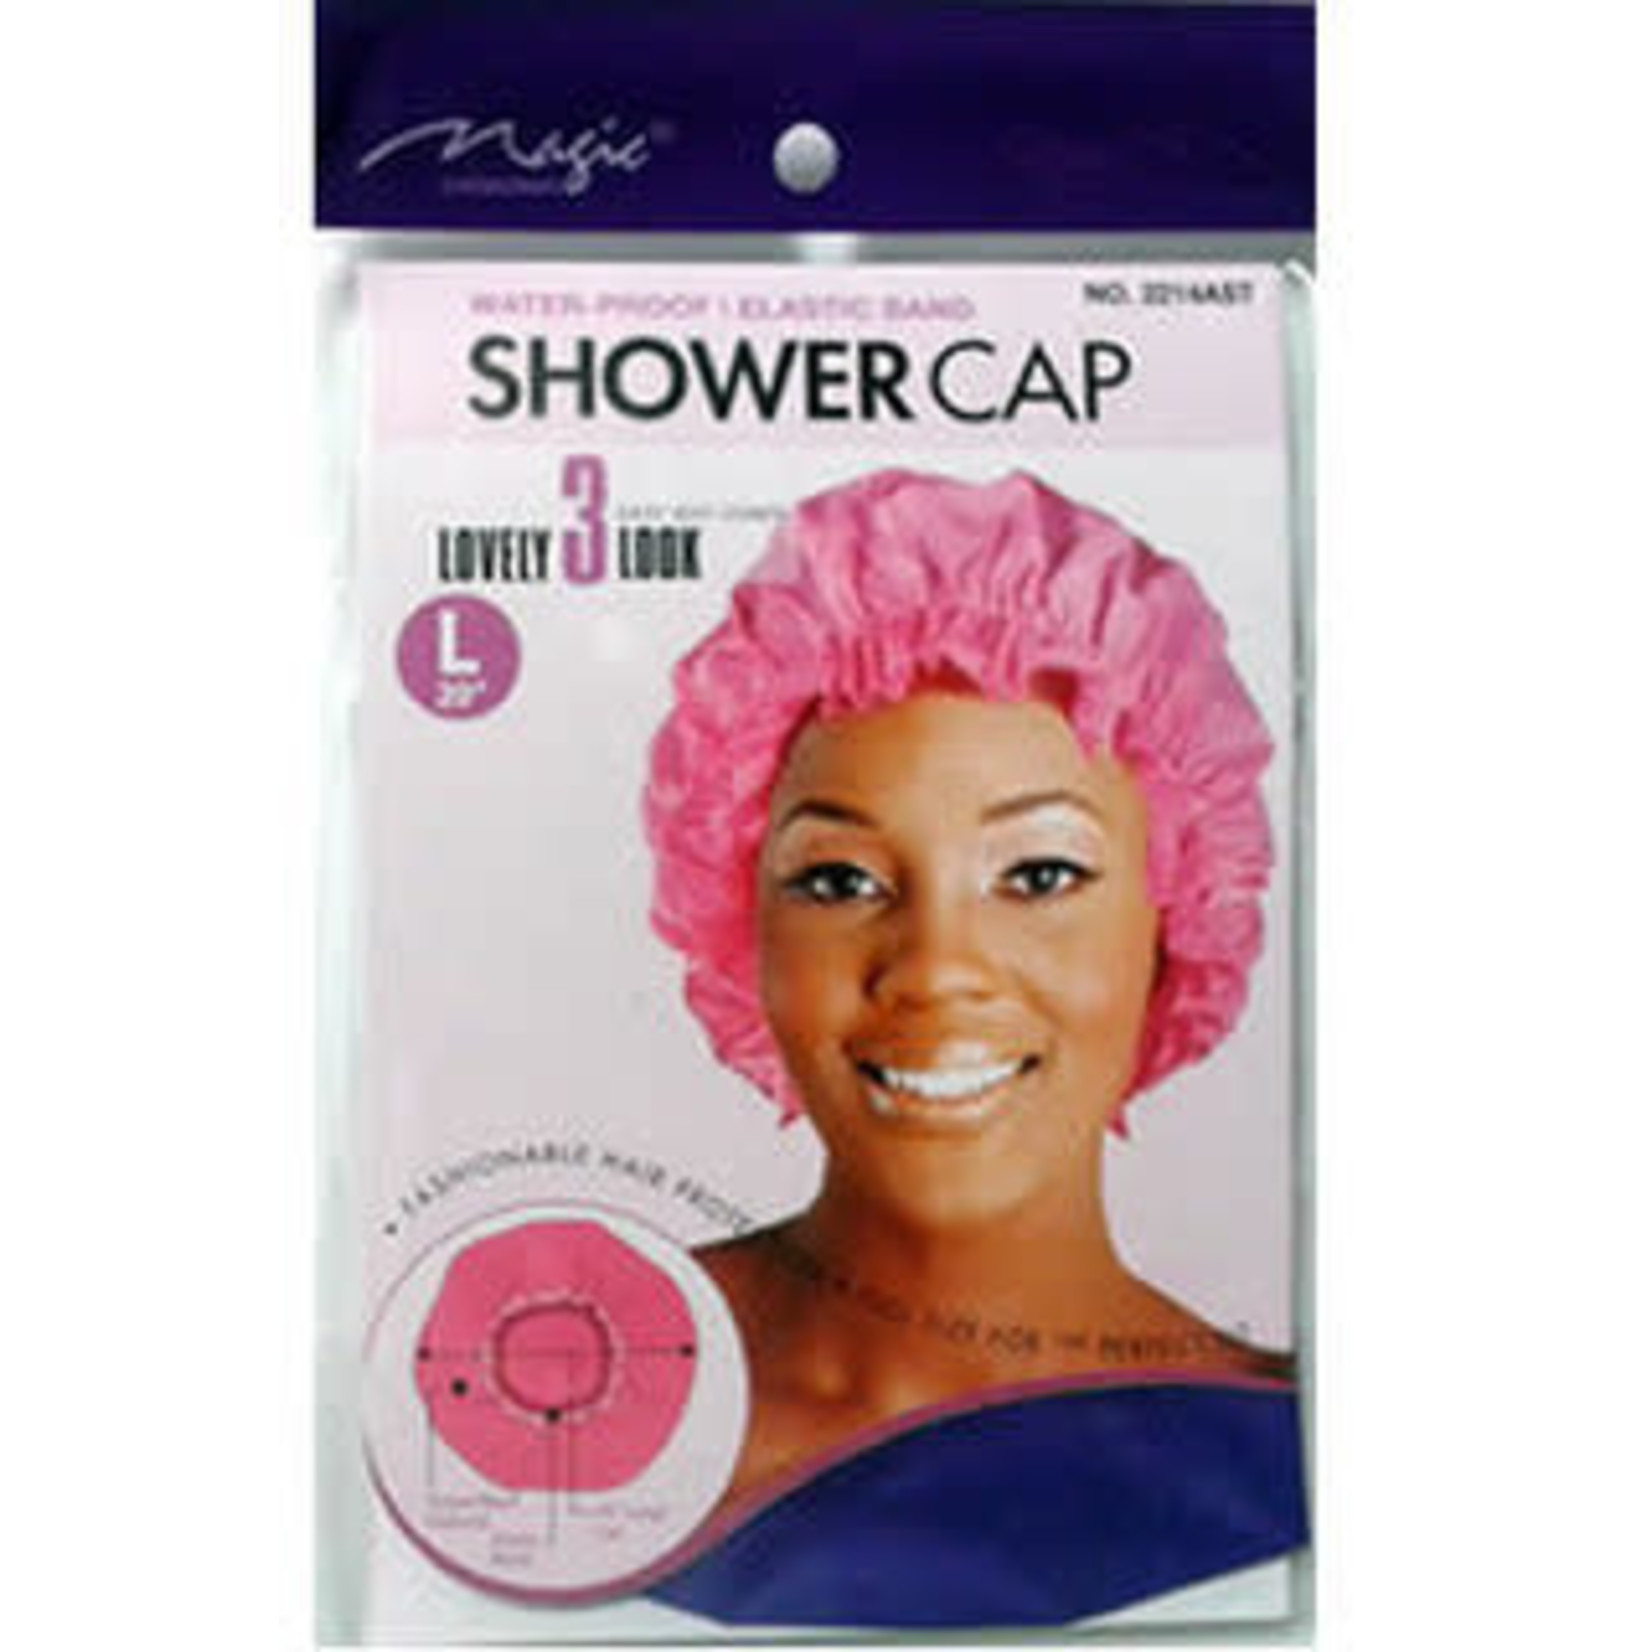 MAGIC COLLECTION MAGIC COLLECTION SHOWER CAP - LARGE